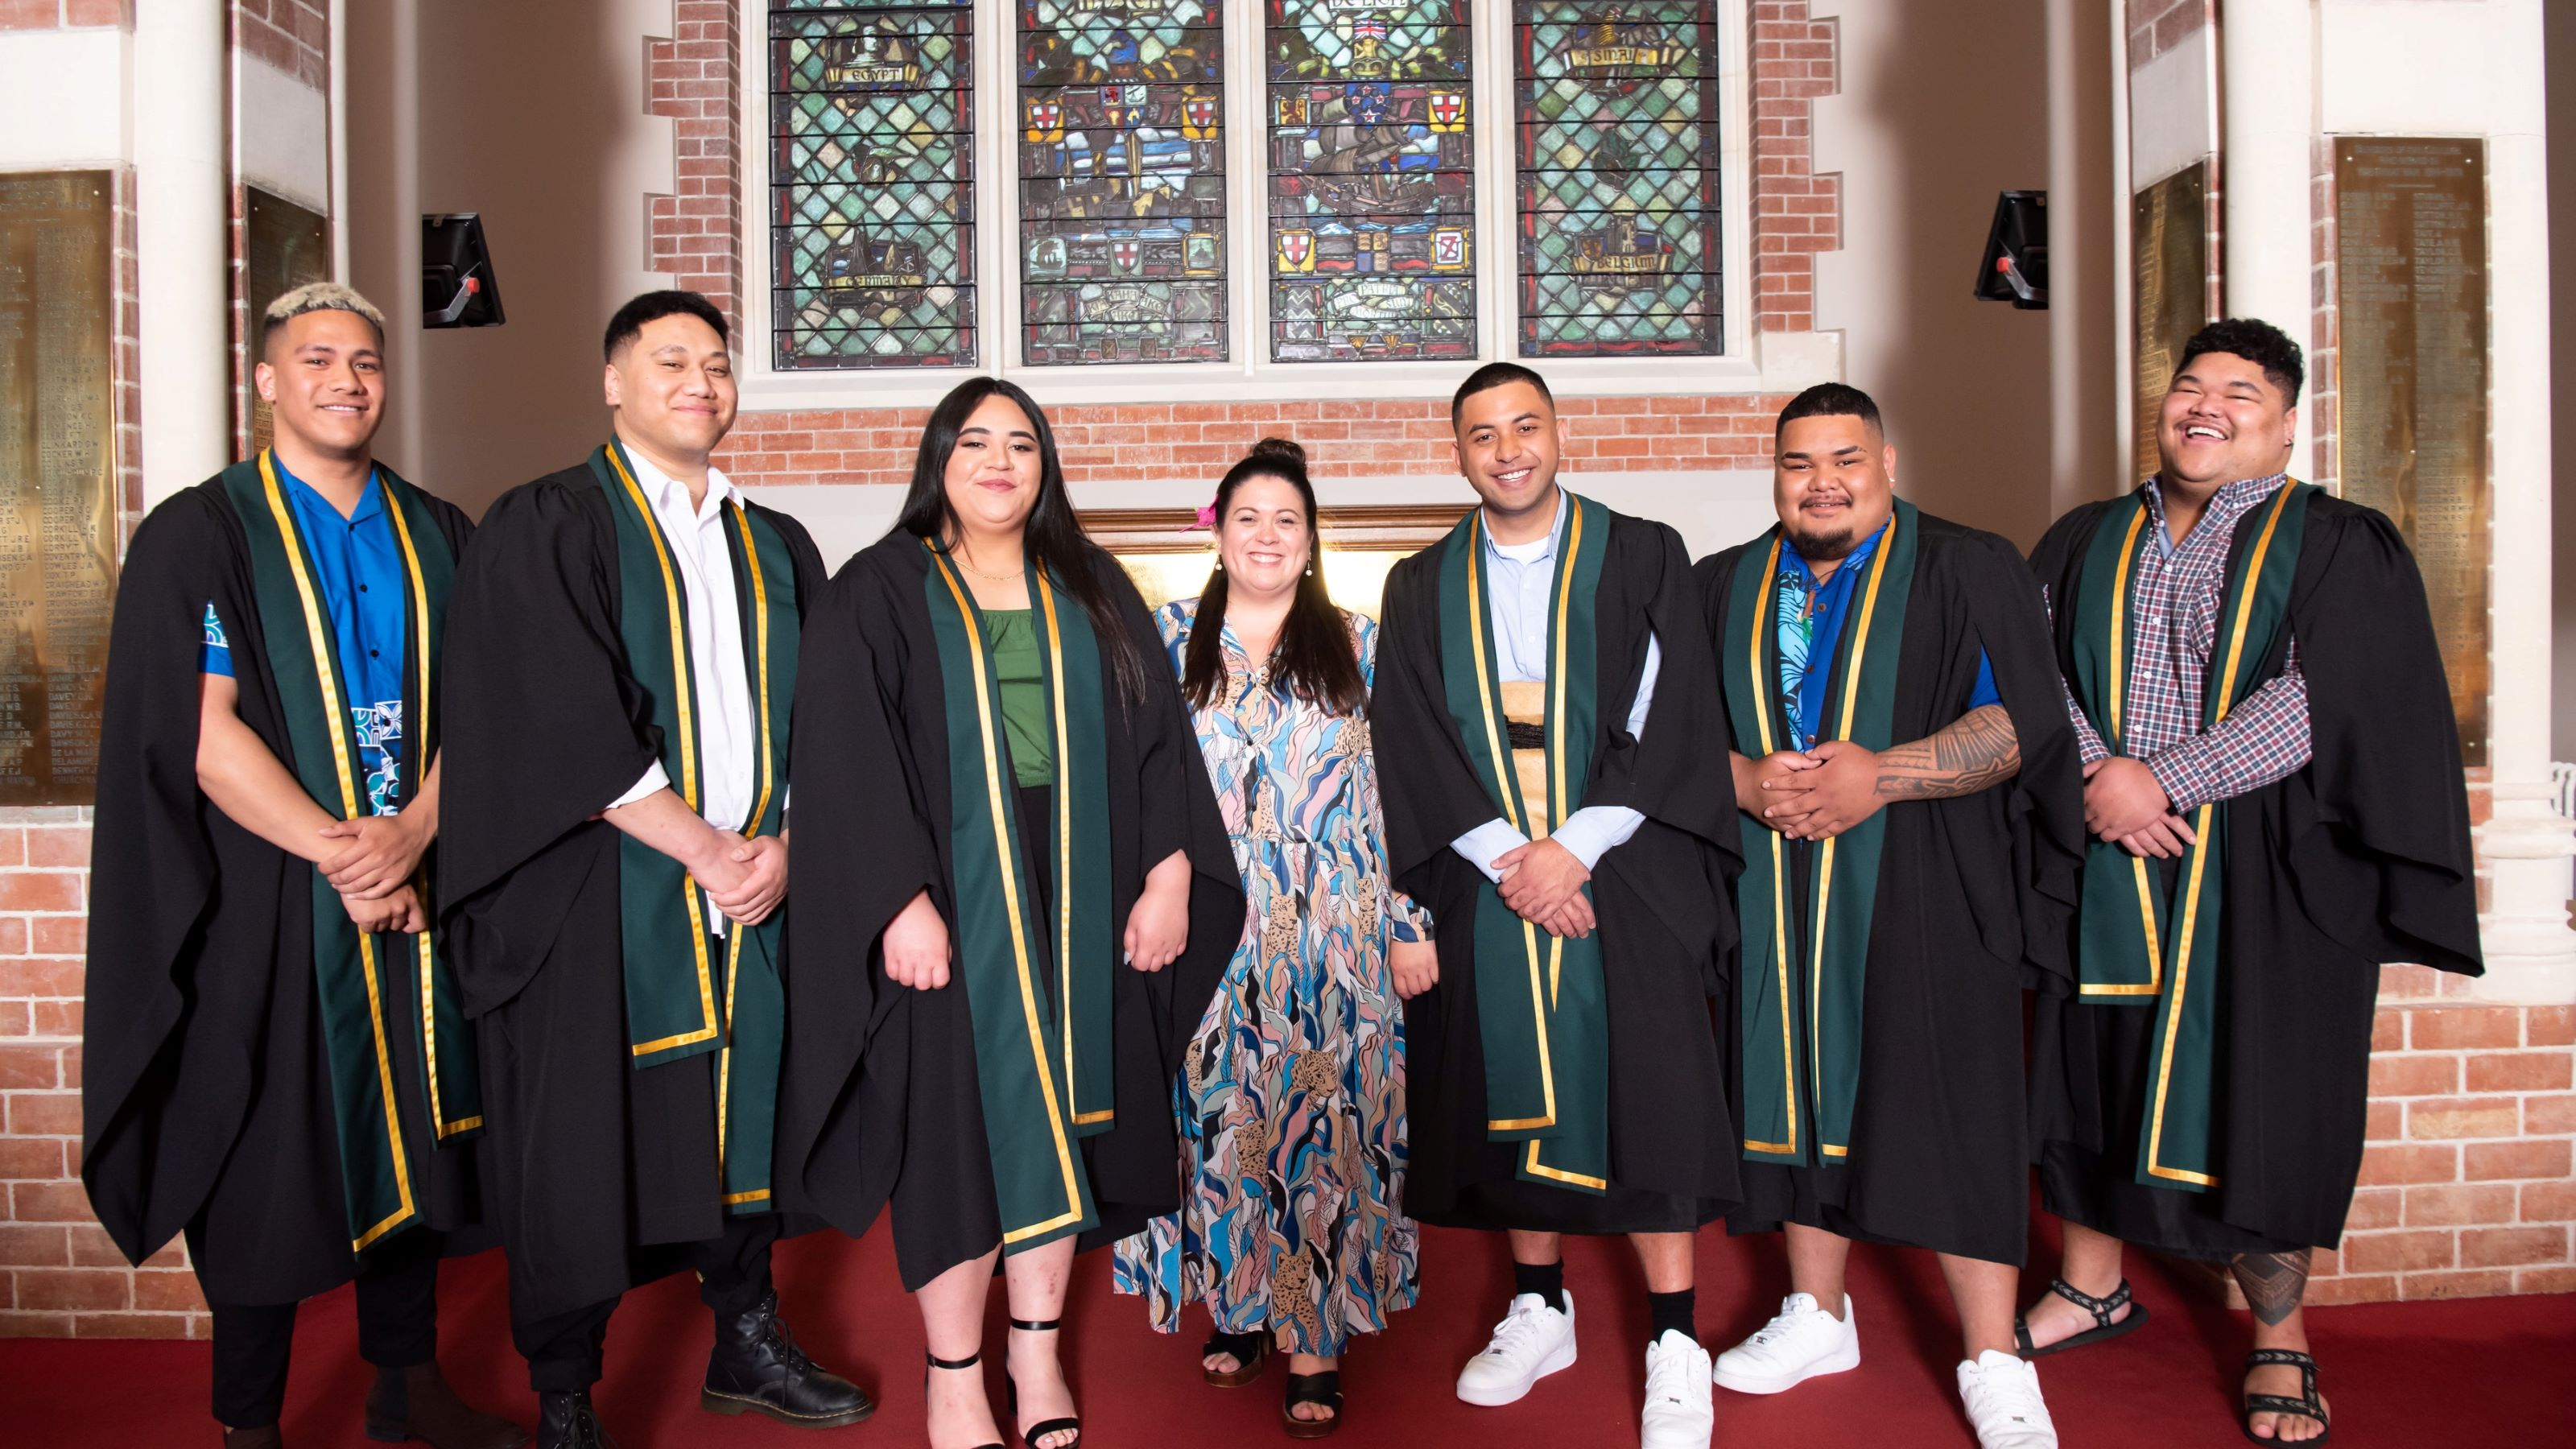 Pasifika students in academic dress (robe and sash) stand in front of a red brick wall with stained glass windows